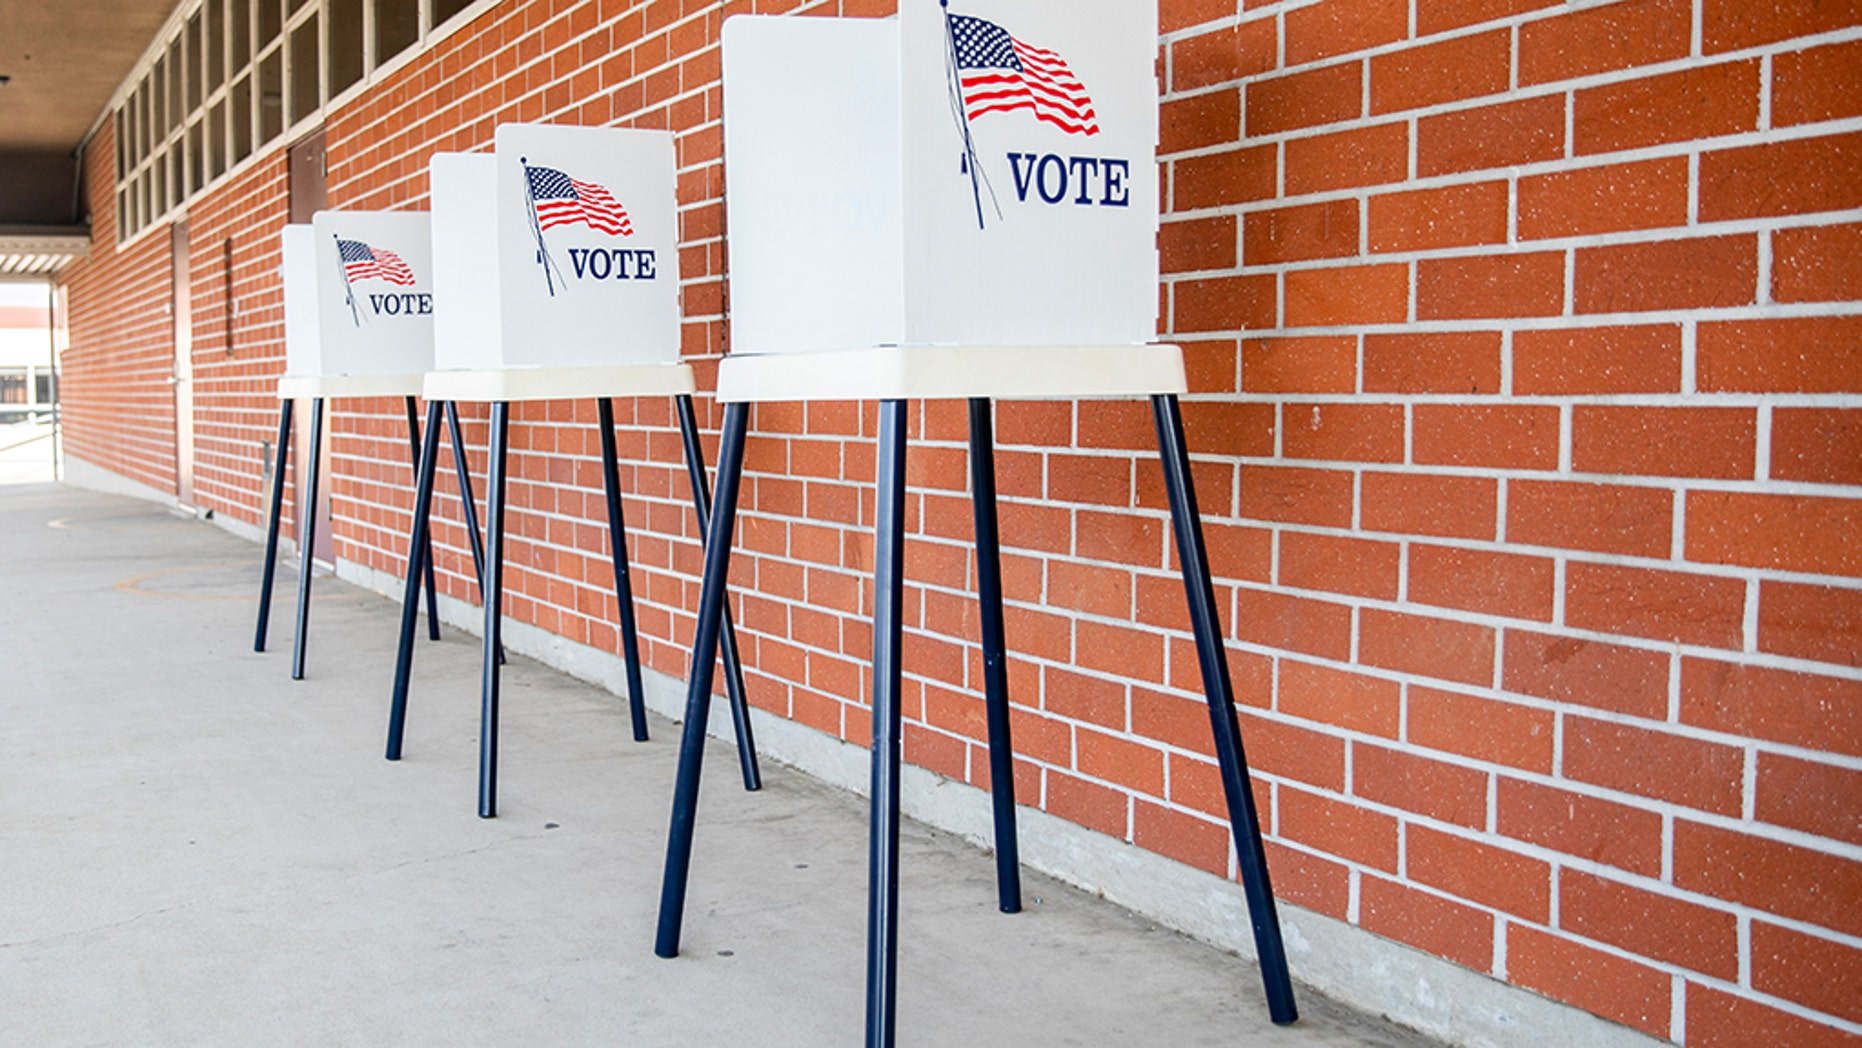 A polling location station is ready for the election day.